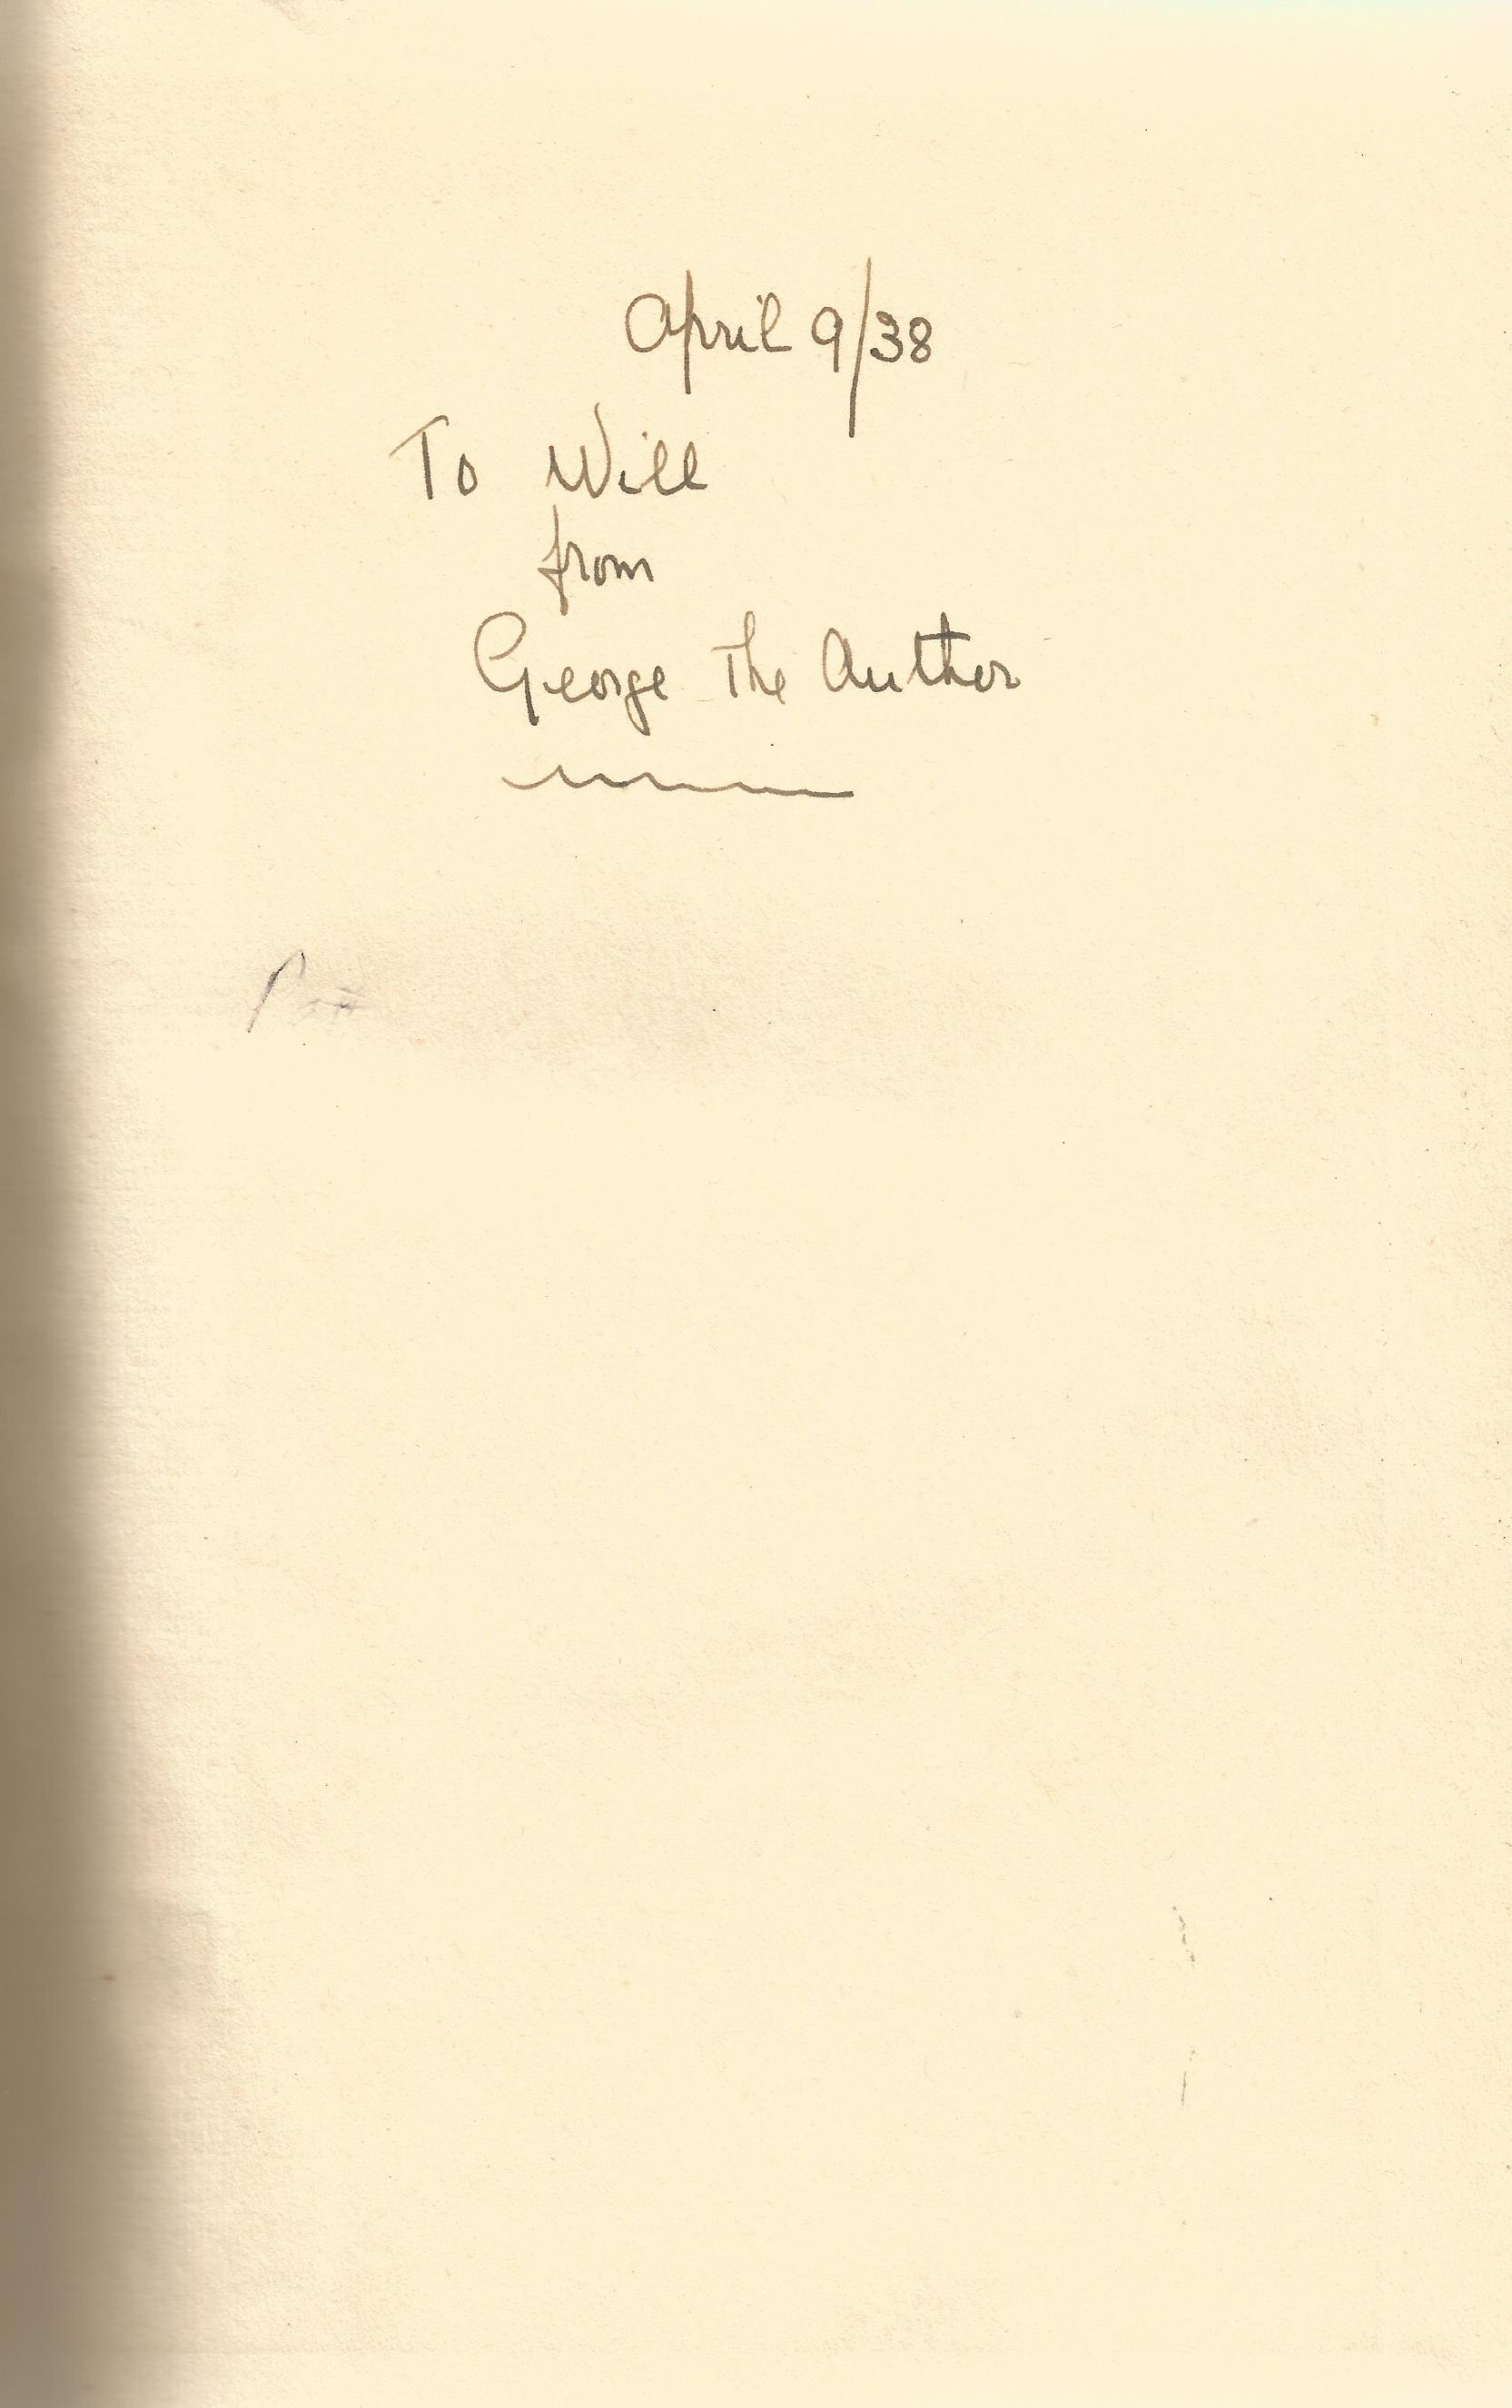 George Mozart signed hardback book Limelight. Signed inside page April 38 To Will from George the - Image 2 of 2